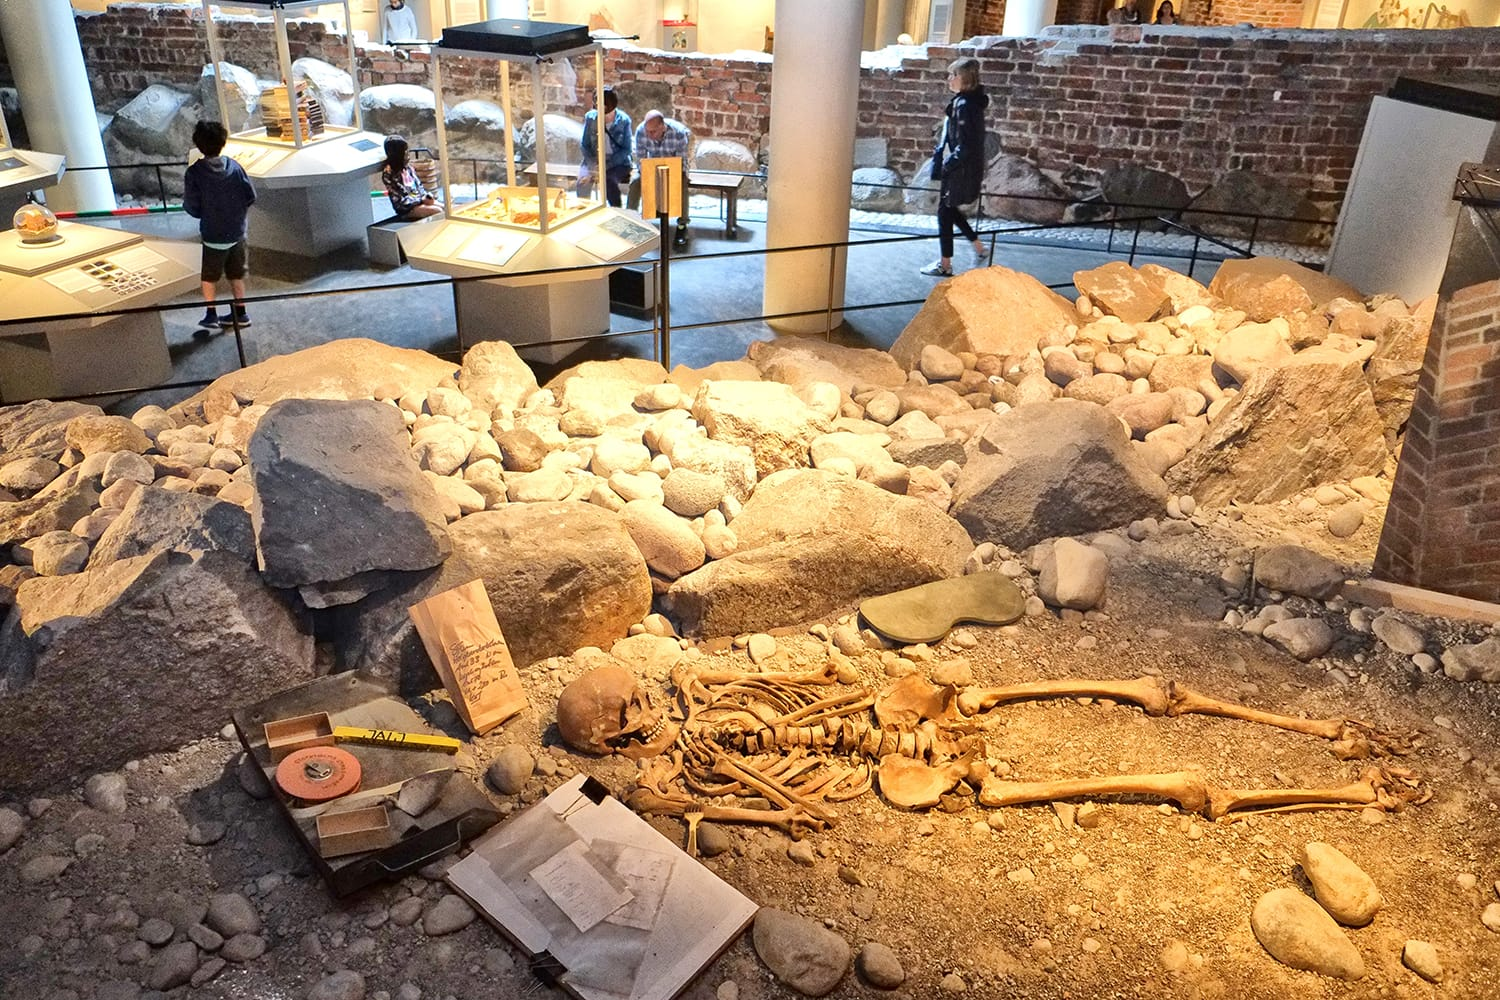 Medieval Museum. The museum is built around the findings from the largest excavation in Stockholm, Sweden